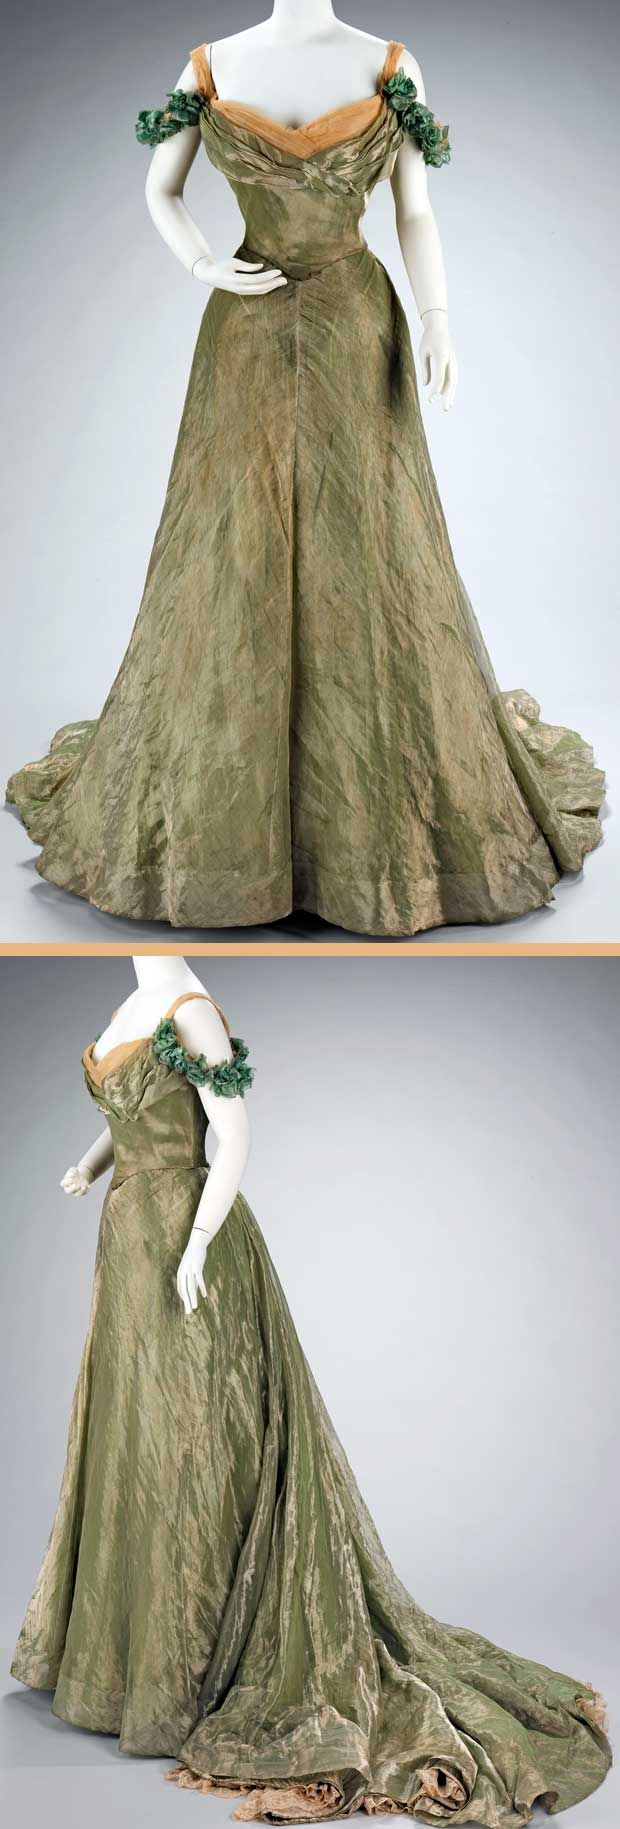 Ball gown, Jacques Doucet, 1898-1900. Silk and metal. Ball gown, Jacques Doucet, 1898-1900. Silk and metal. This ball gown is simple in design, yet extravagant by the choice of materials. The sheer overlayer is enhanced by the solid lamé underlayers and a sense of luxury is added by the hidden lace flounce at the hem. Metropolitan Museum of Art.